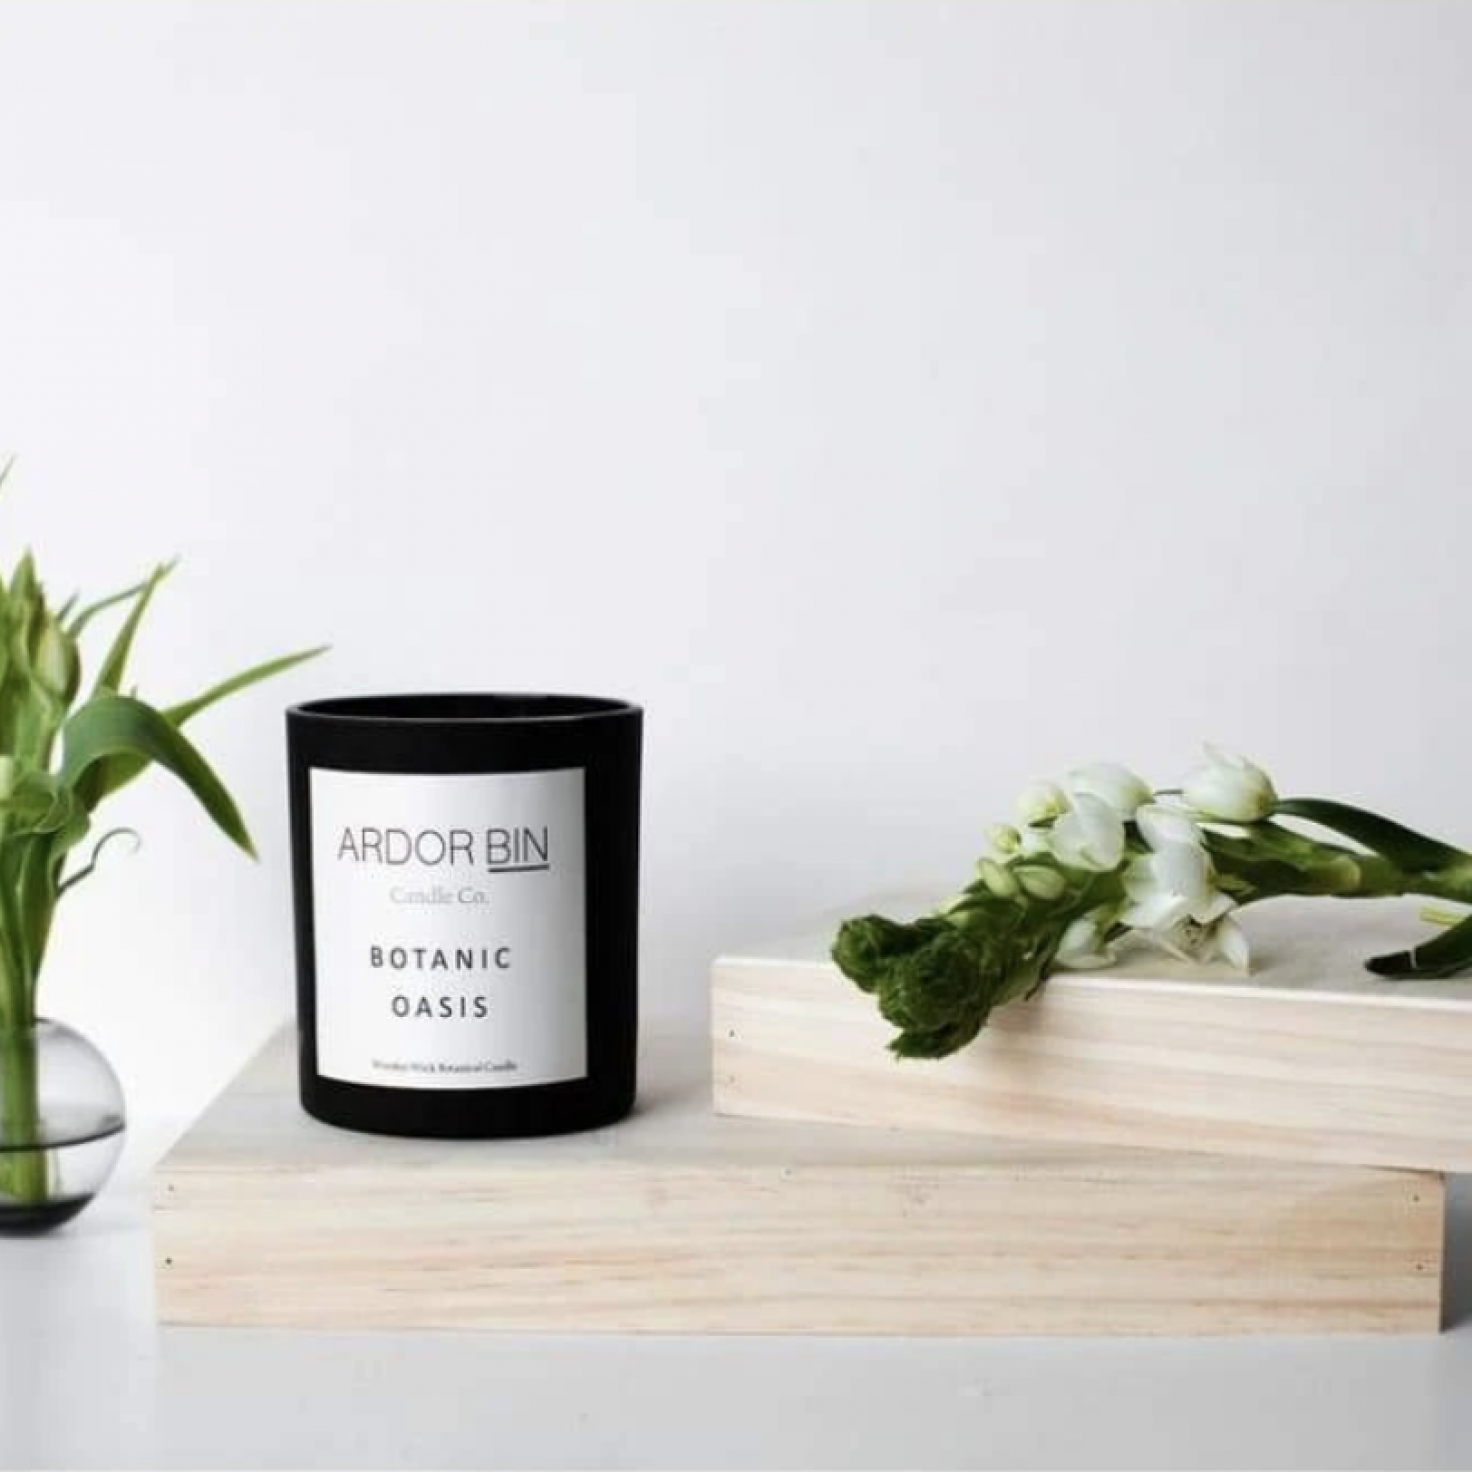 7 Candles To Make Your Space More Zen